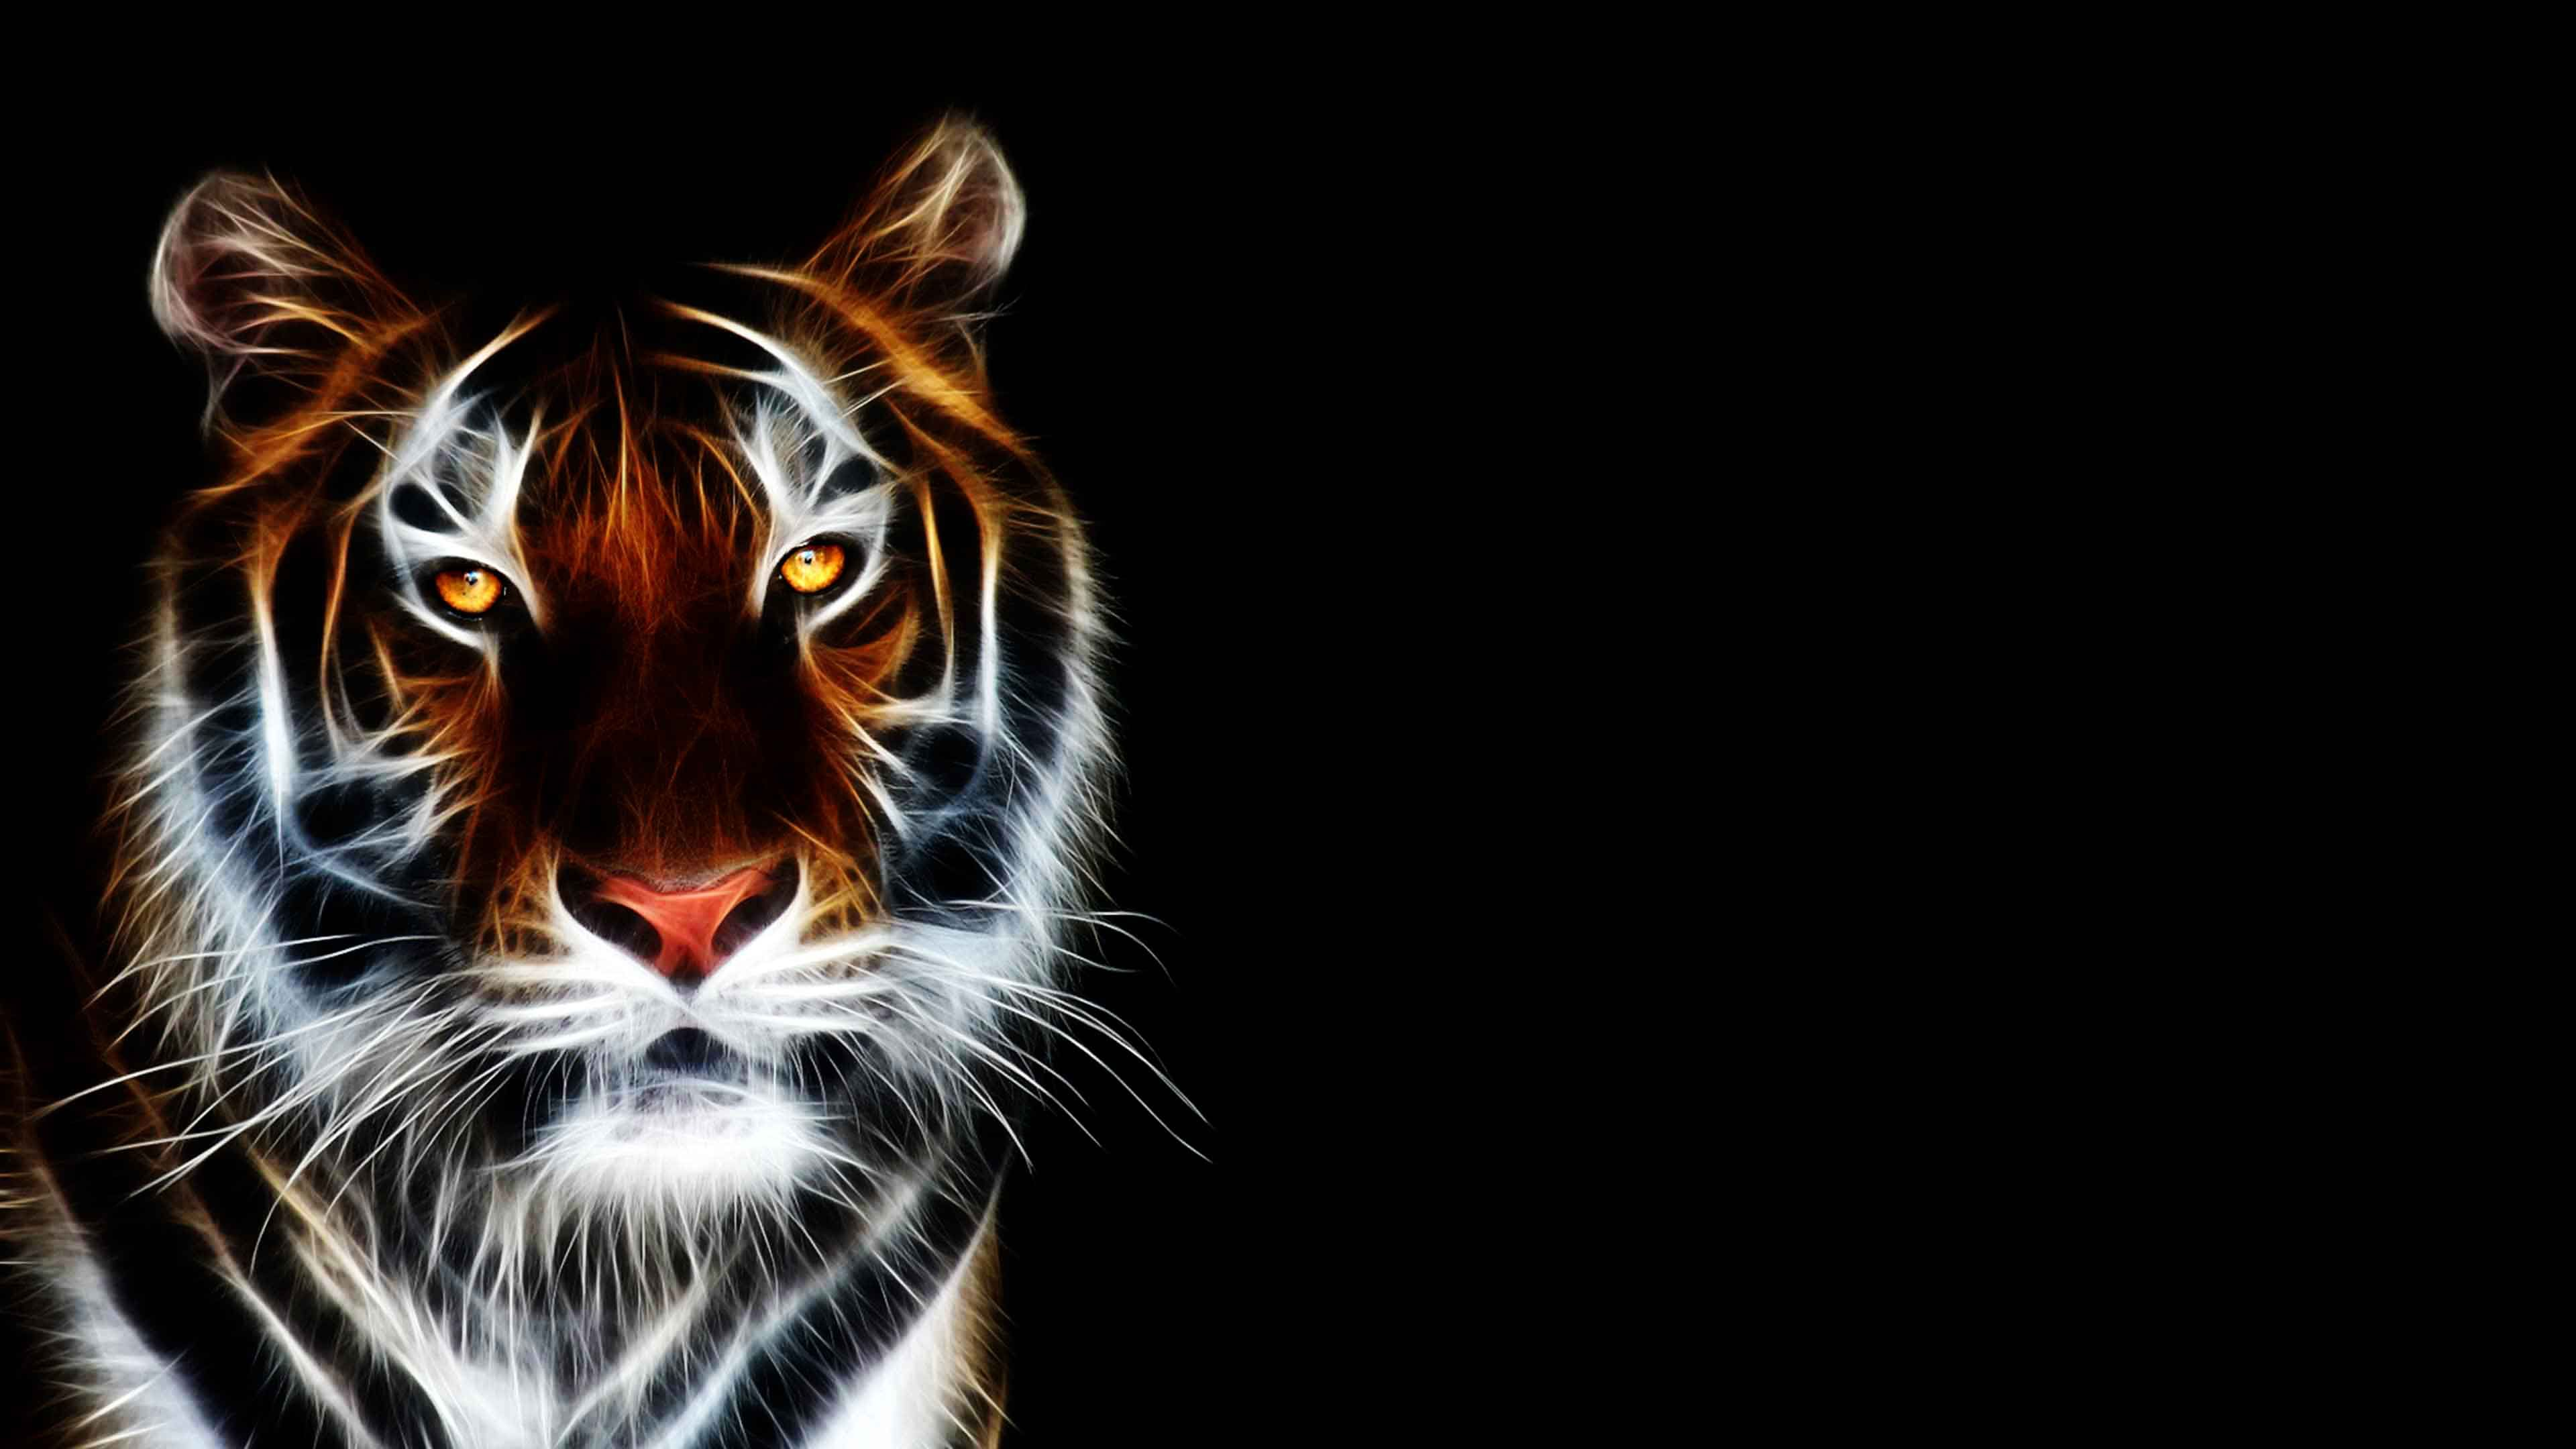 3d Animated Tiger Wallpaper Tiger Images Tiger Art Tiger Pictures